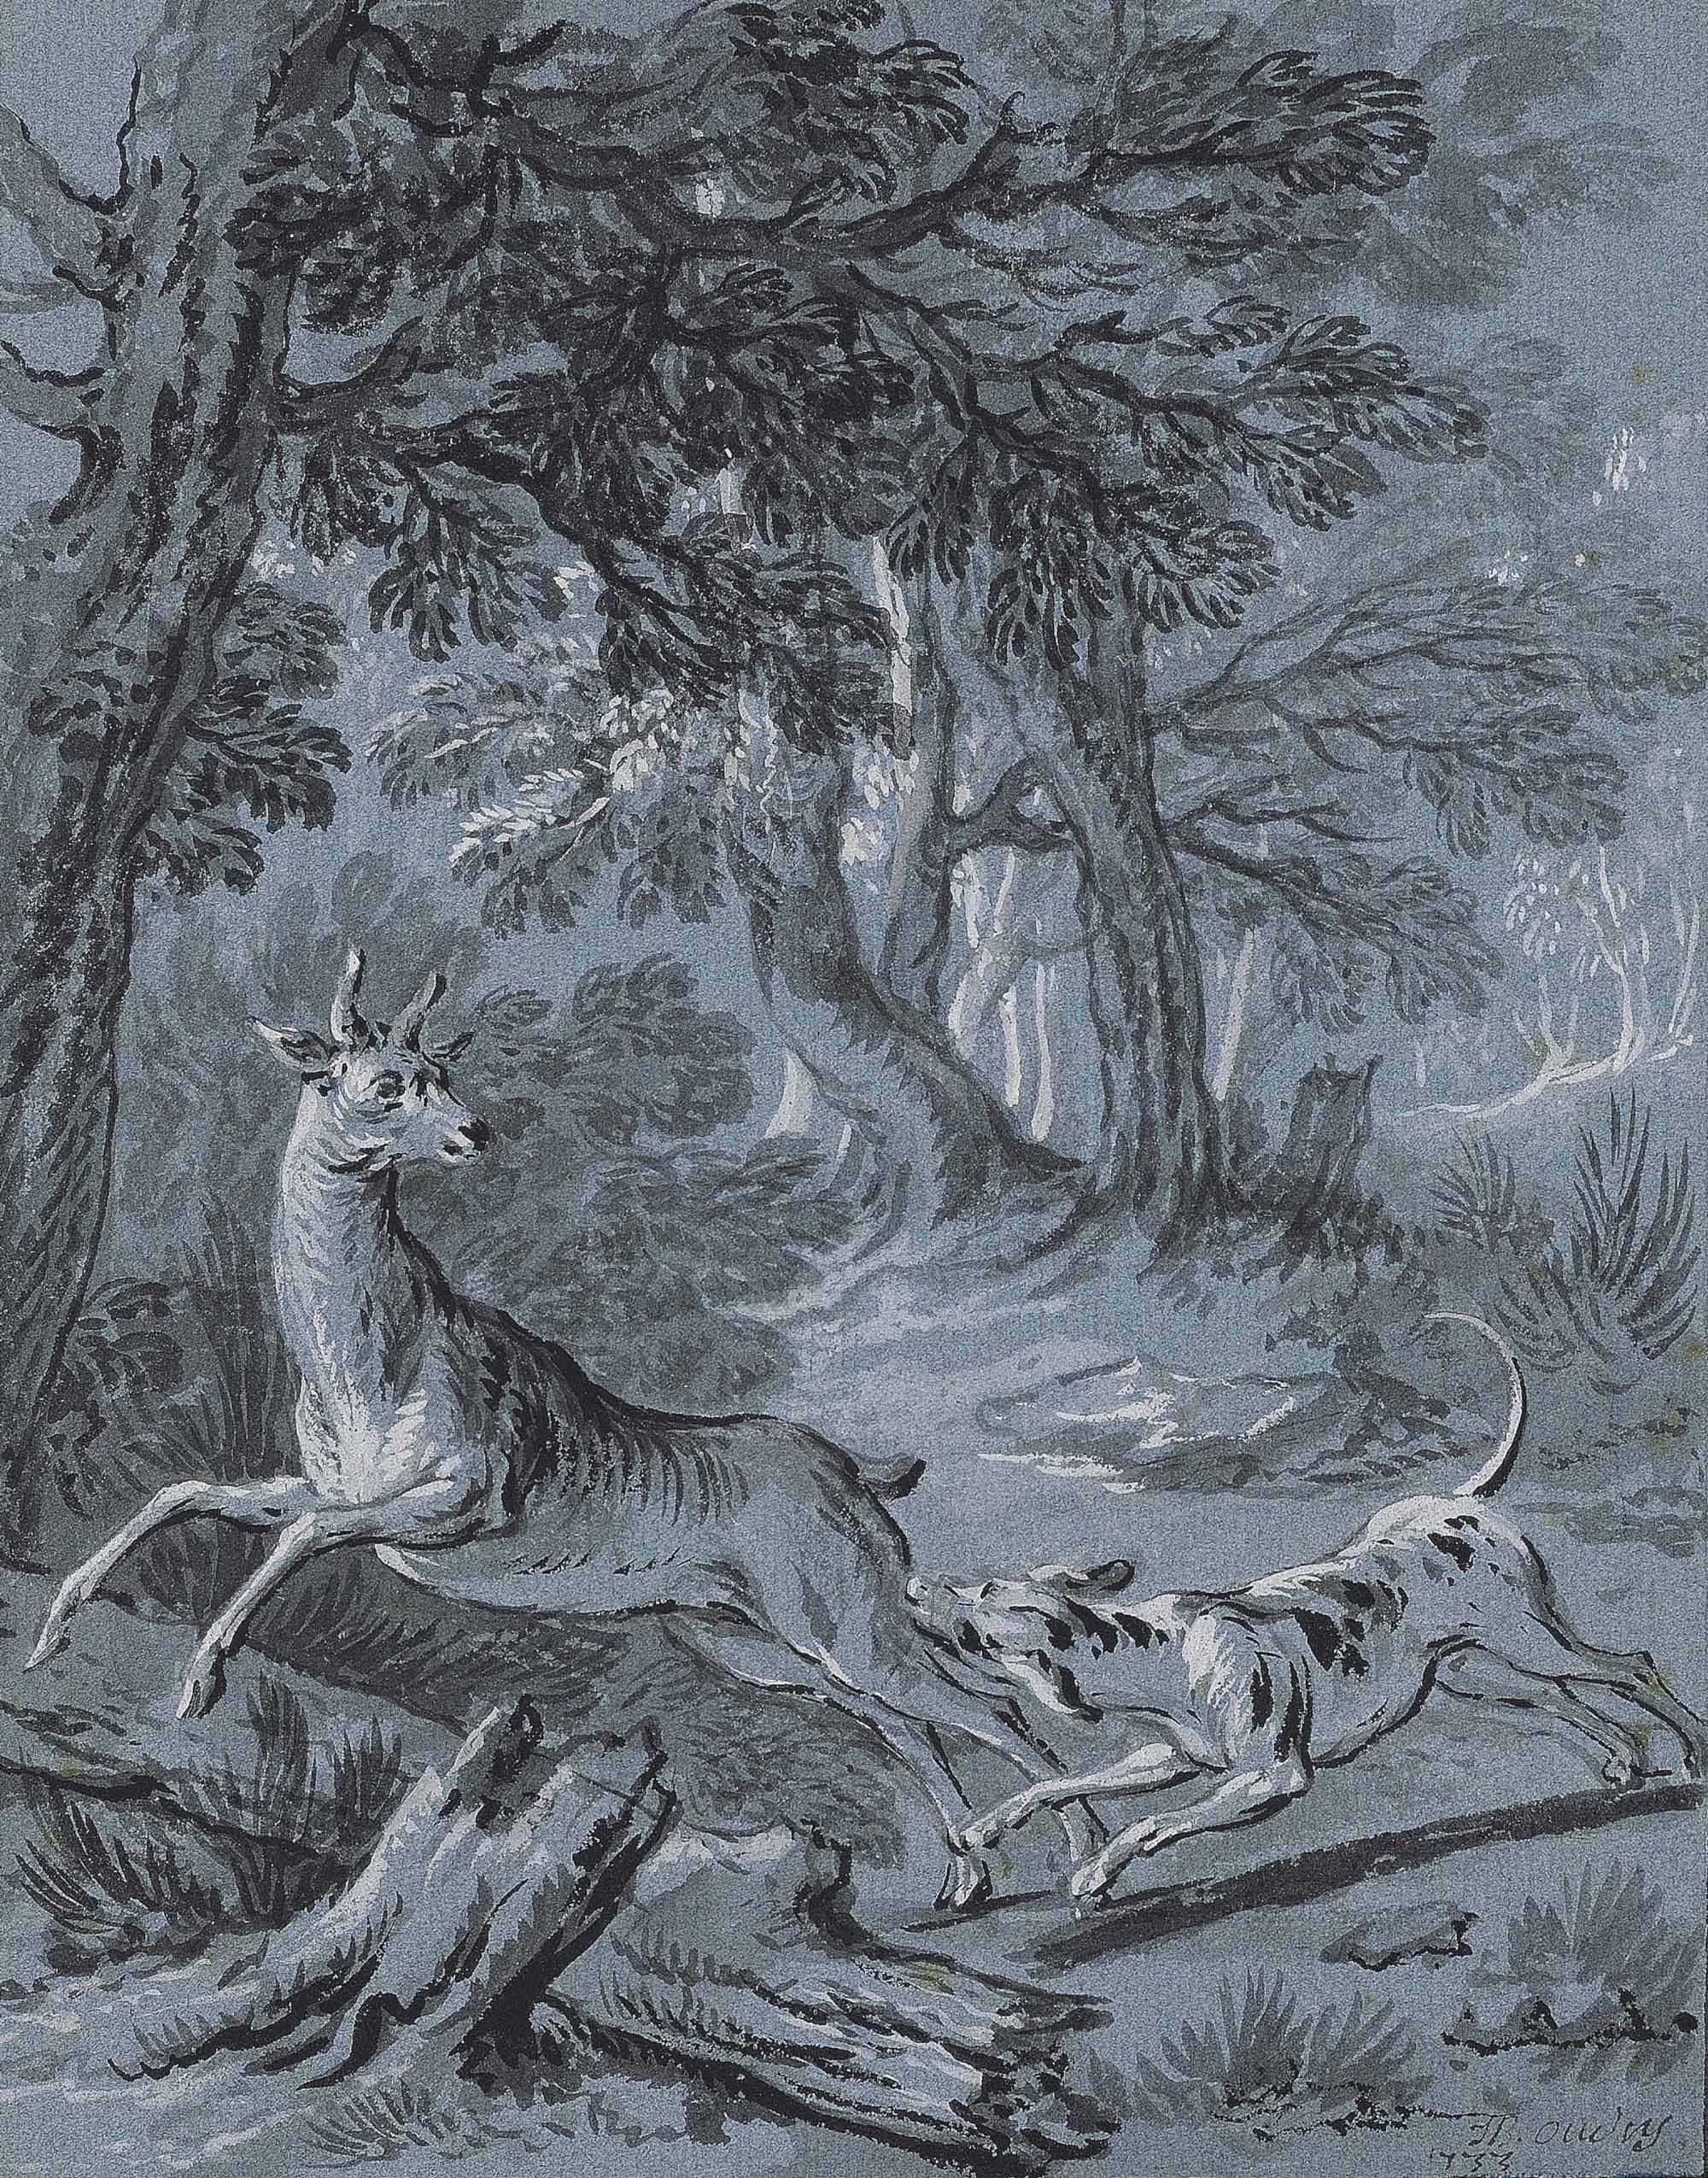 Illustration of one of the Fables of Jean de La Fontaine: The crow, the gazelle, the tortoise and the rat (I)